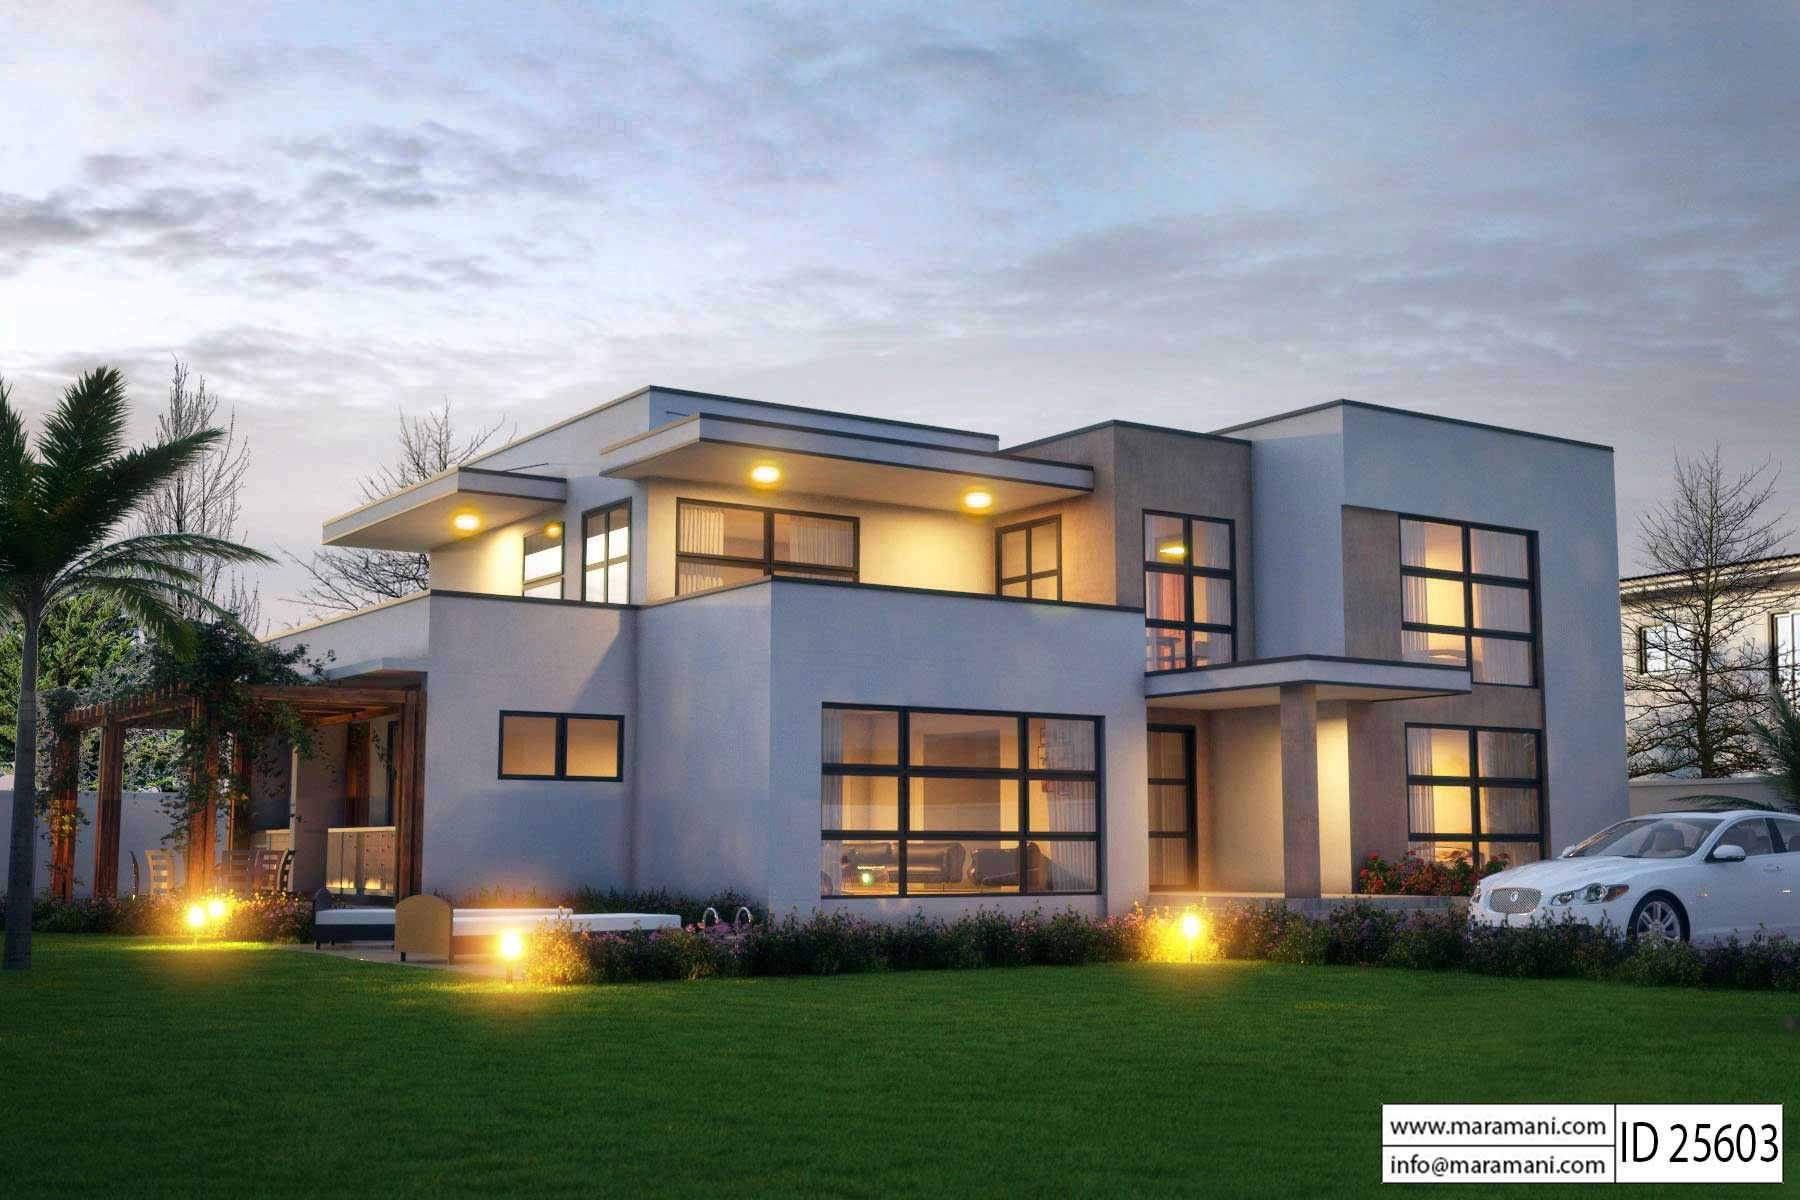 5 Bedroom House Design Id 25603 Contemporary House Plans Modern House Floor Plans Big Modern Houses